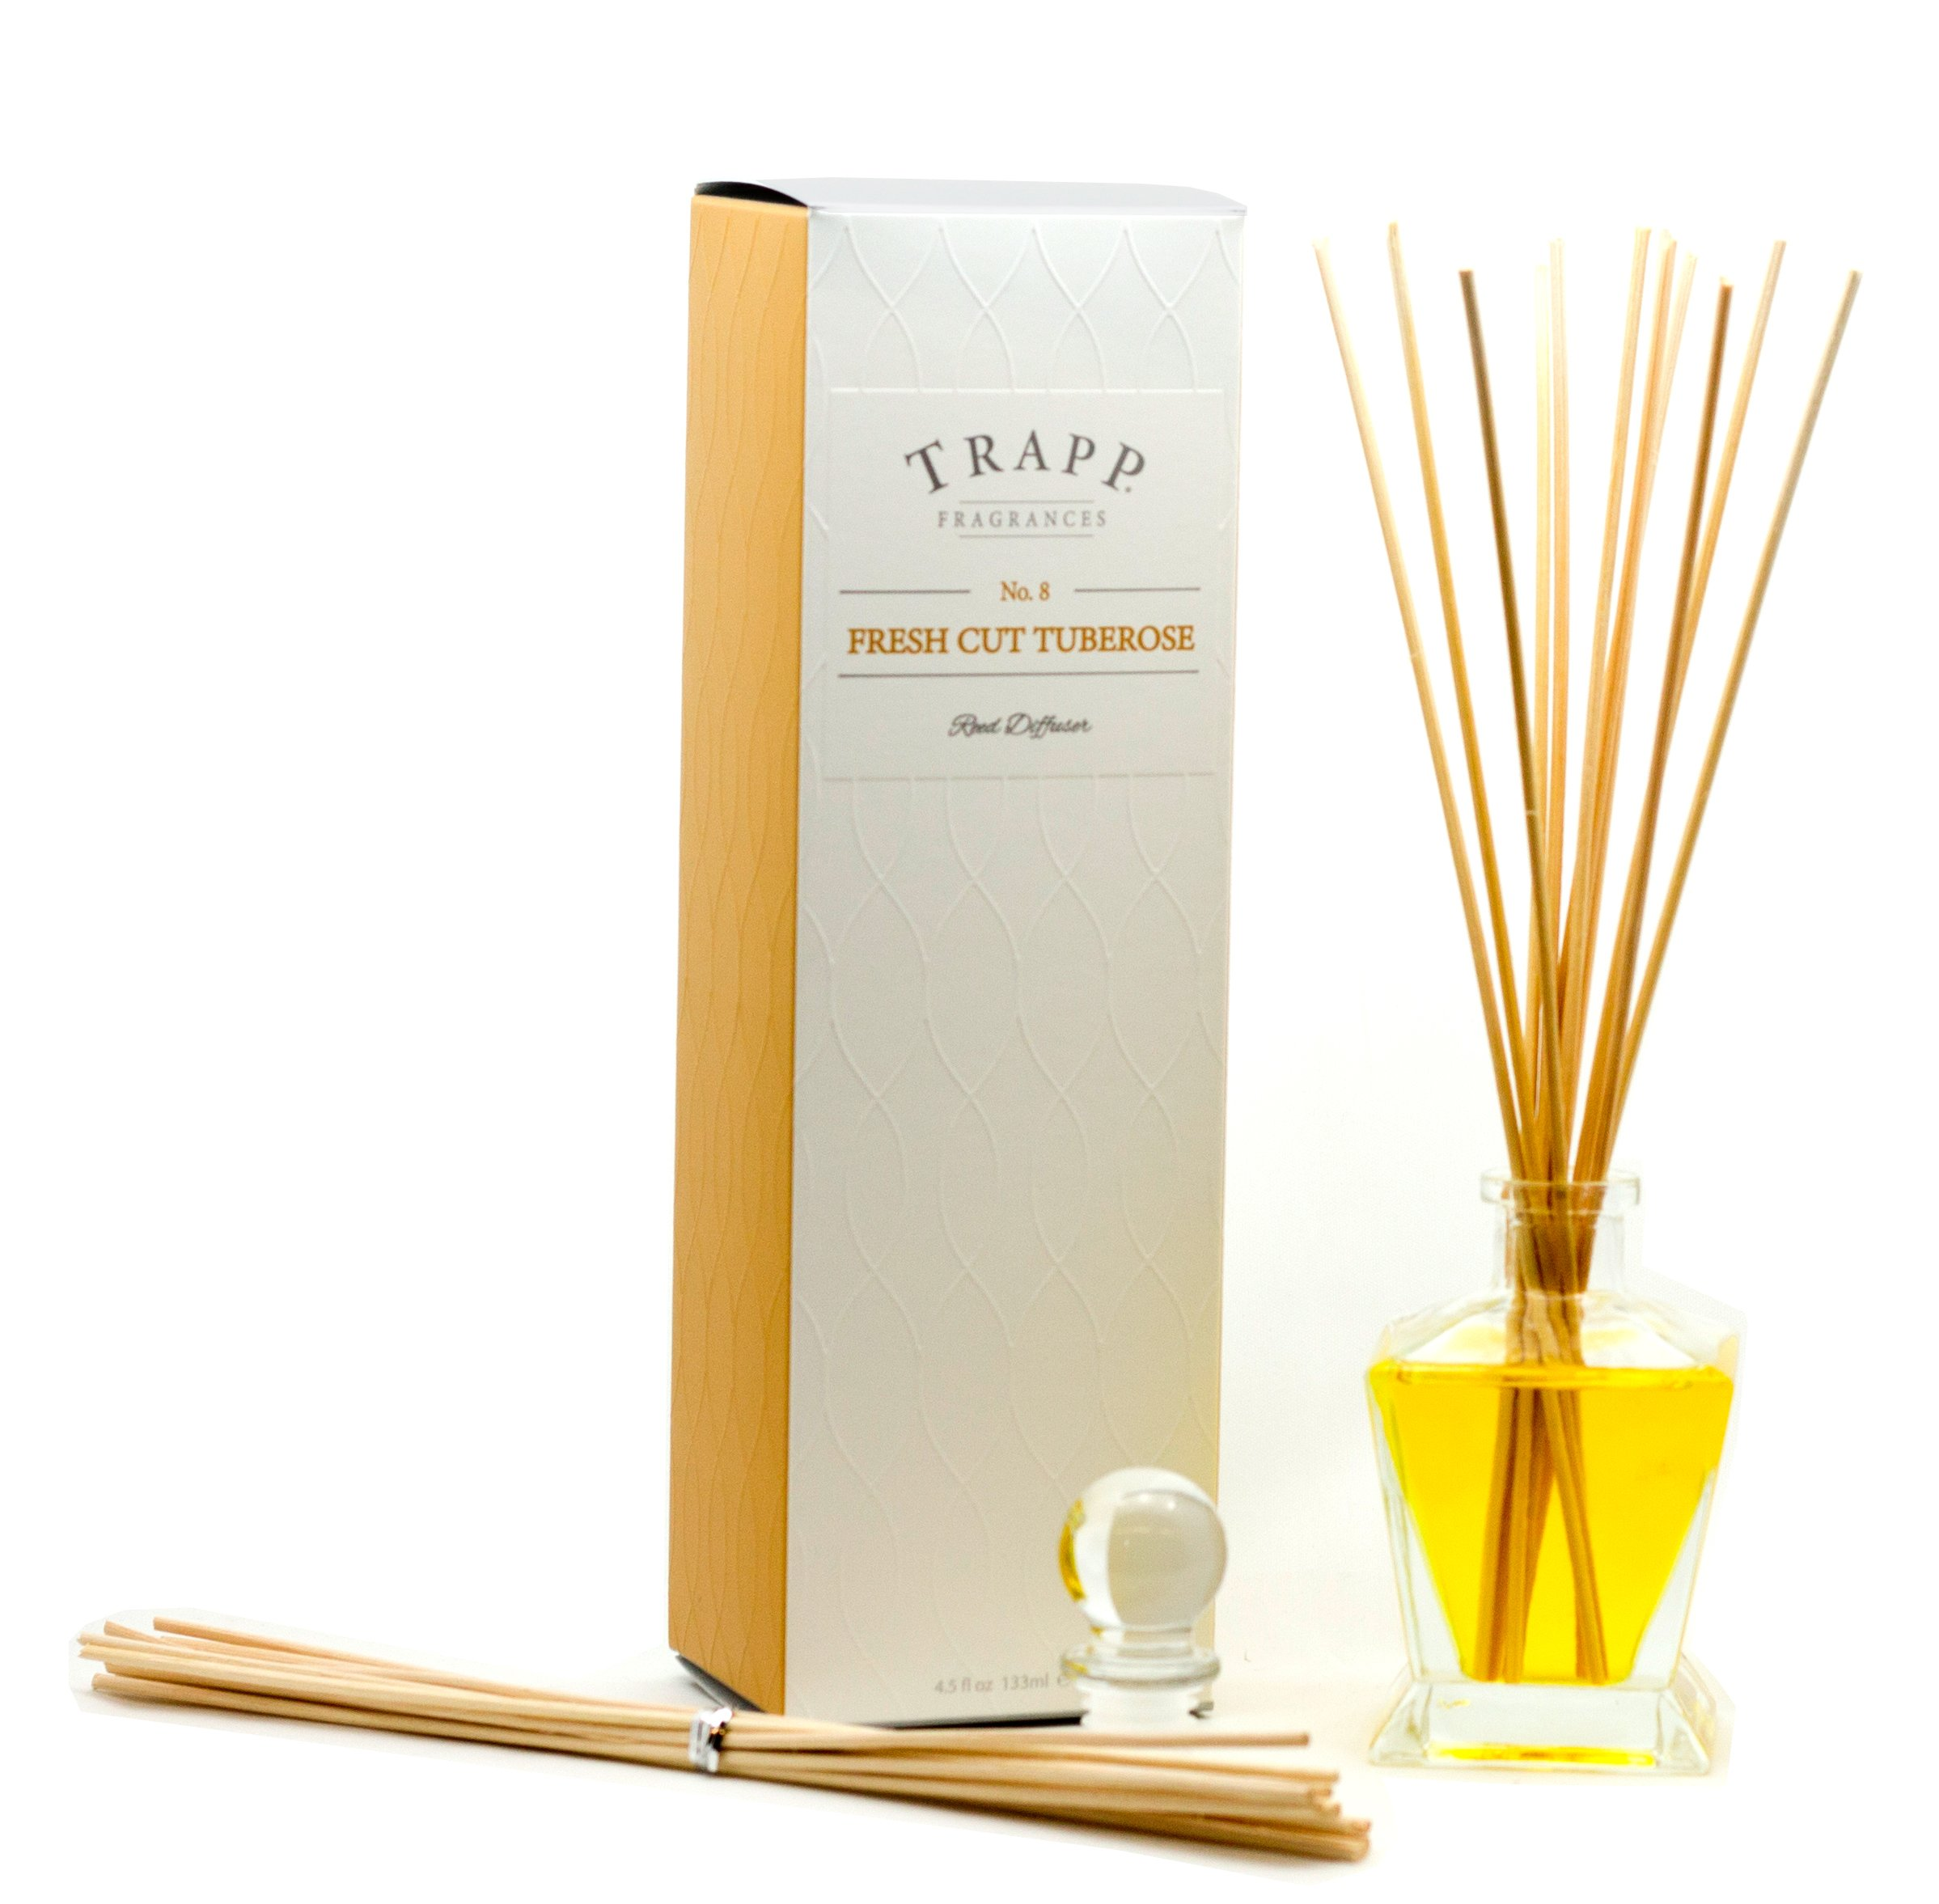 Trapp Candles Reed Diffuser Kit, No. 8 Fresh Cut Tuberose, 4.5-Ounce by Trapp (Image #1)